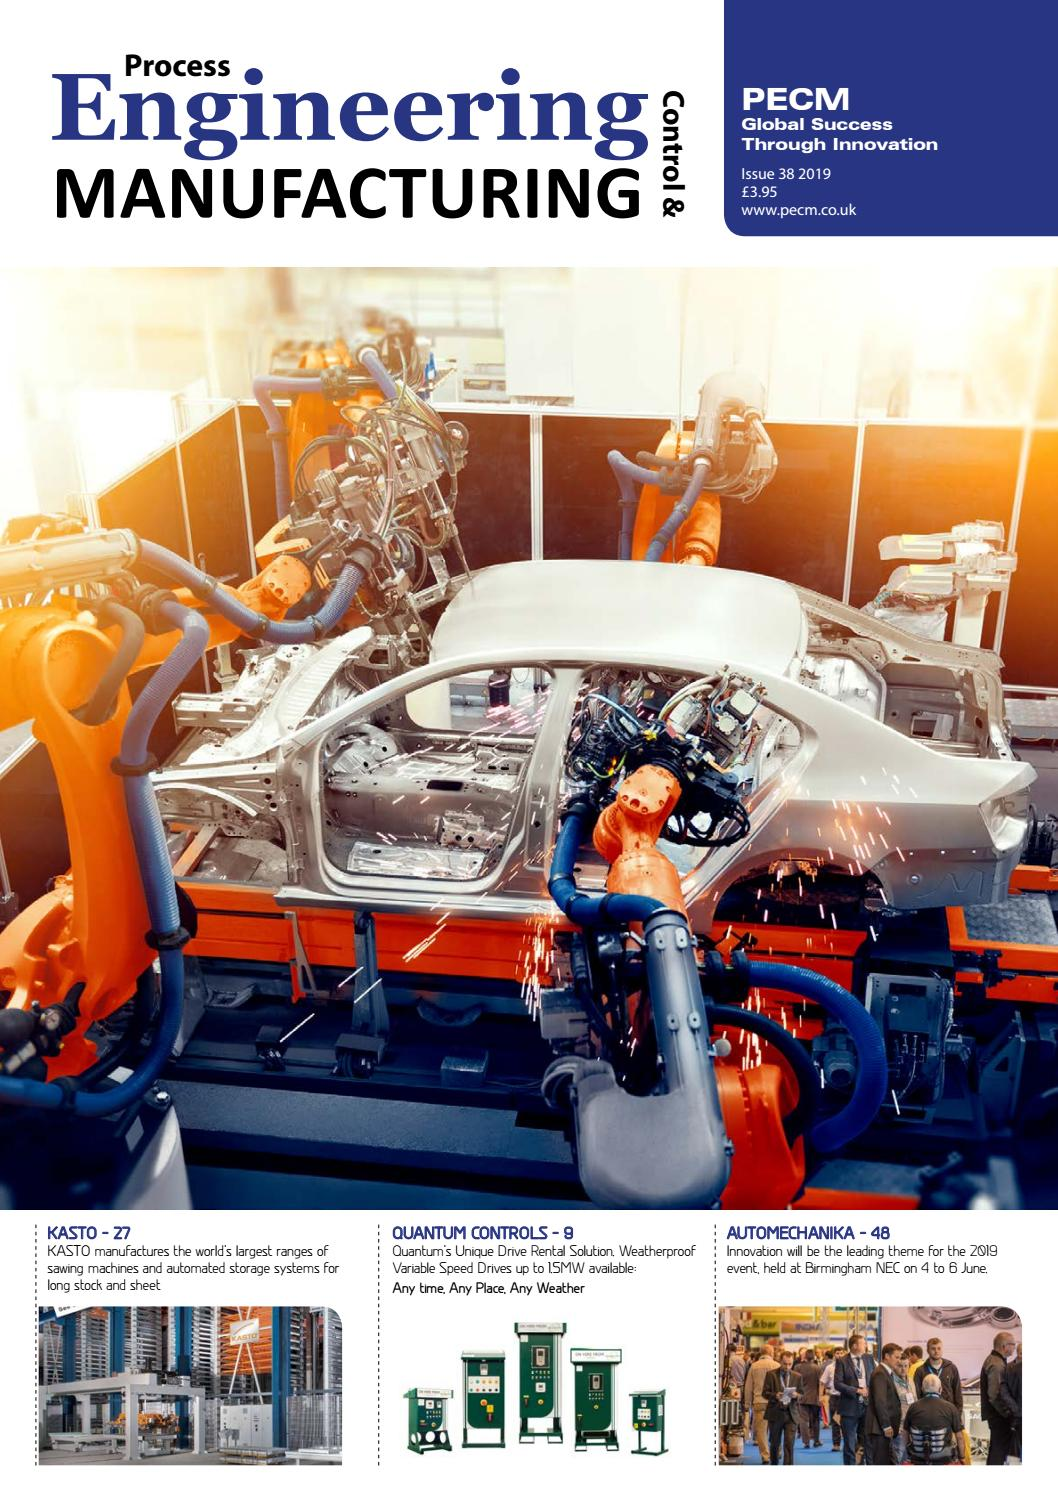 Process Engineering Control & Manufacturing Issue 38 2019 by